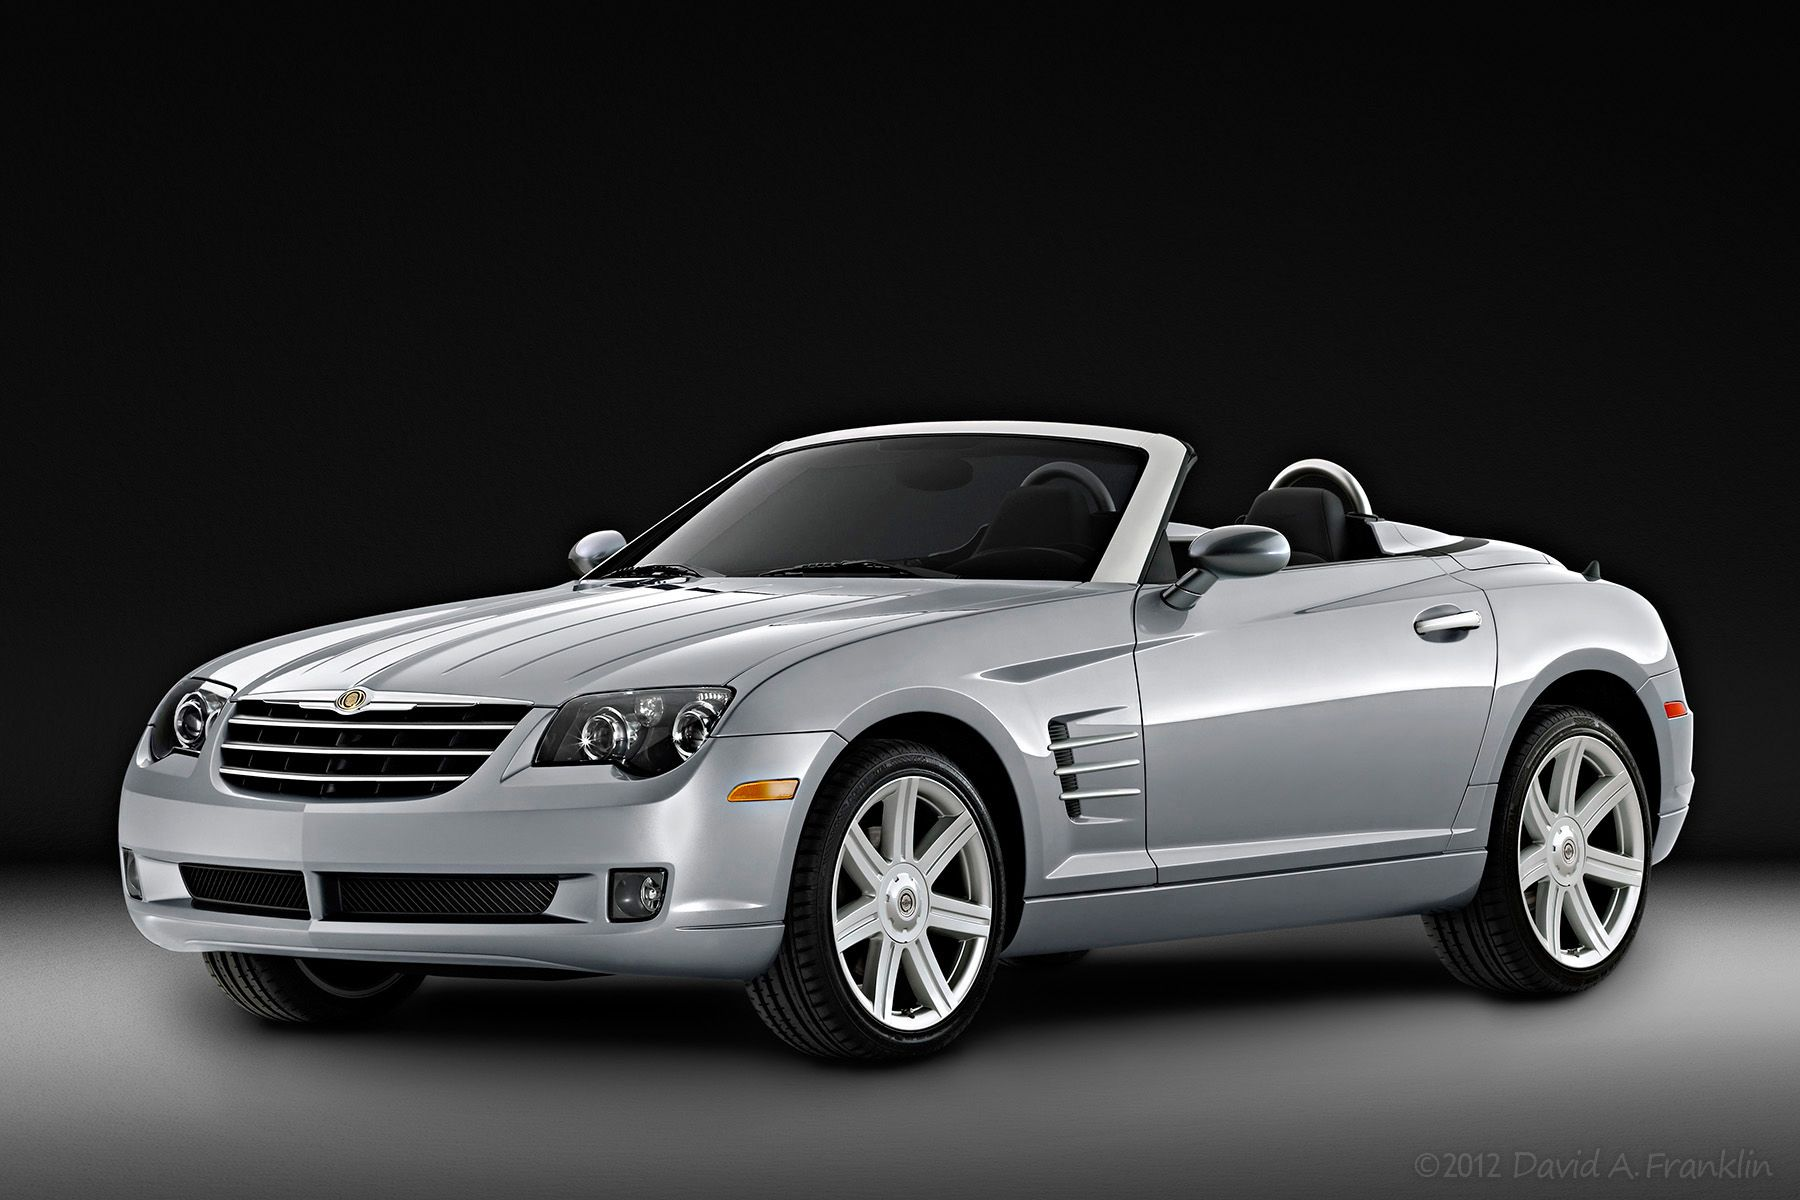 ChryslerCrossfireConvertible_LowF34_Studio